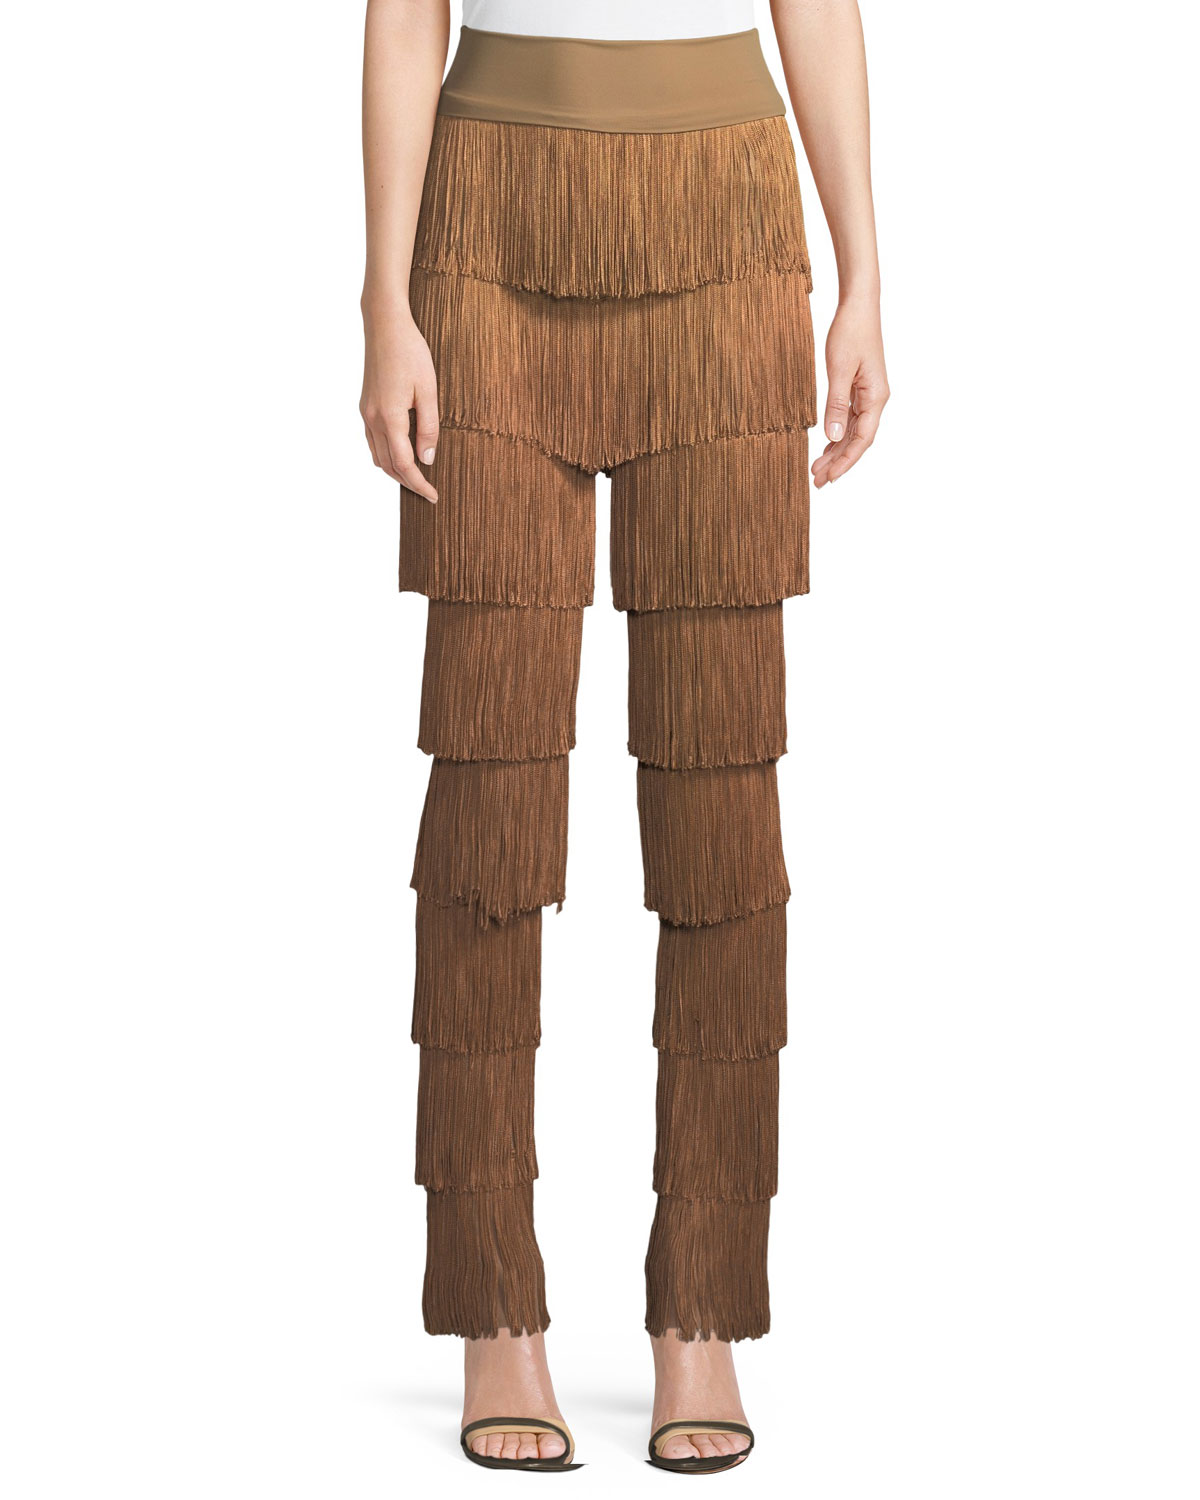 Stretchy All Over Fringe Boot-Cut Pants